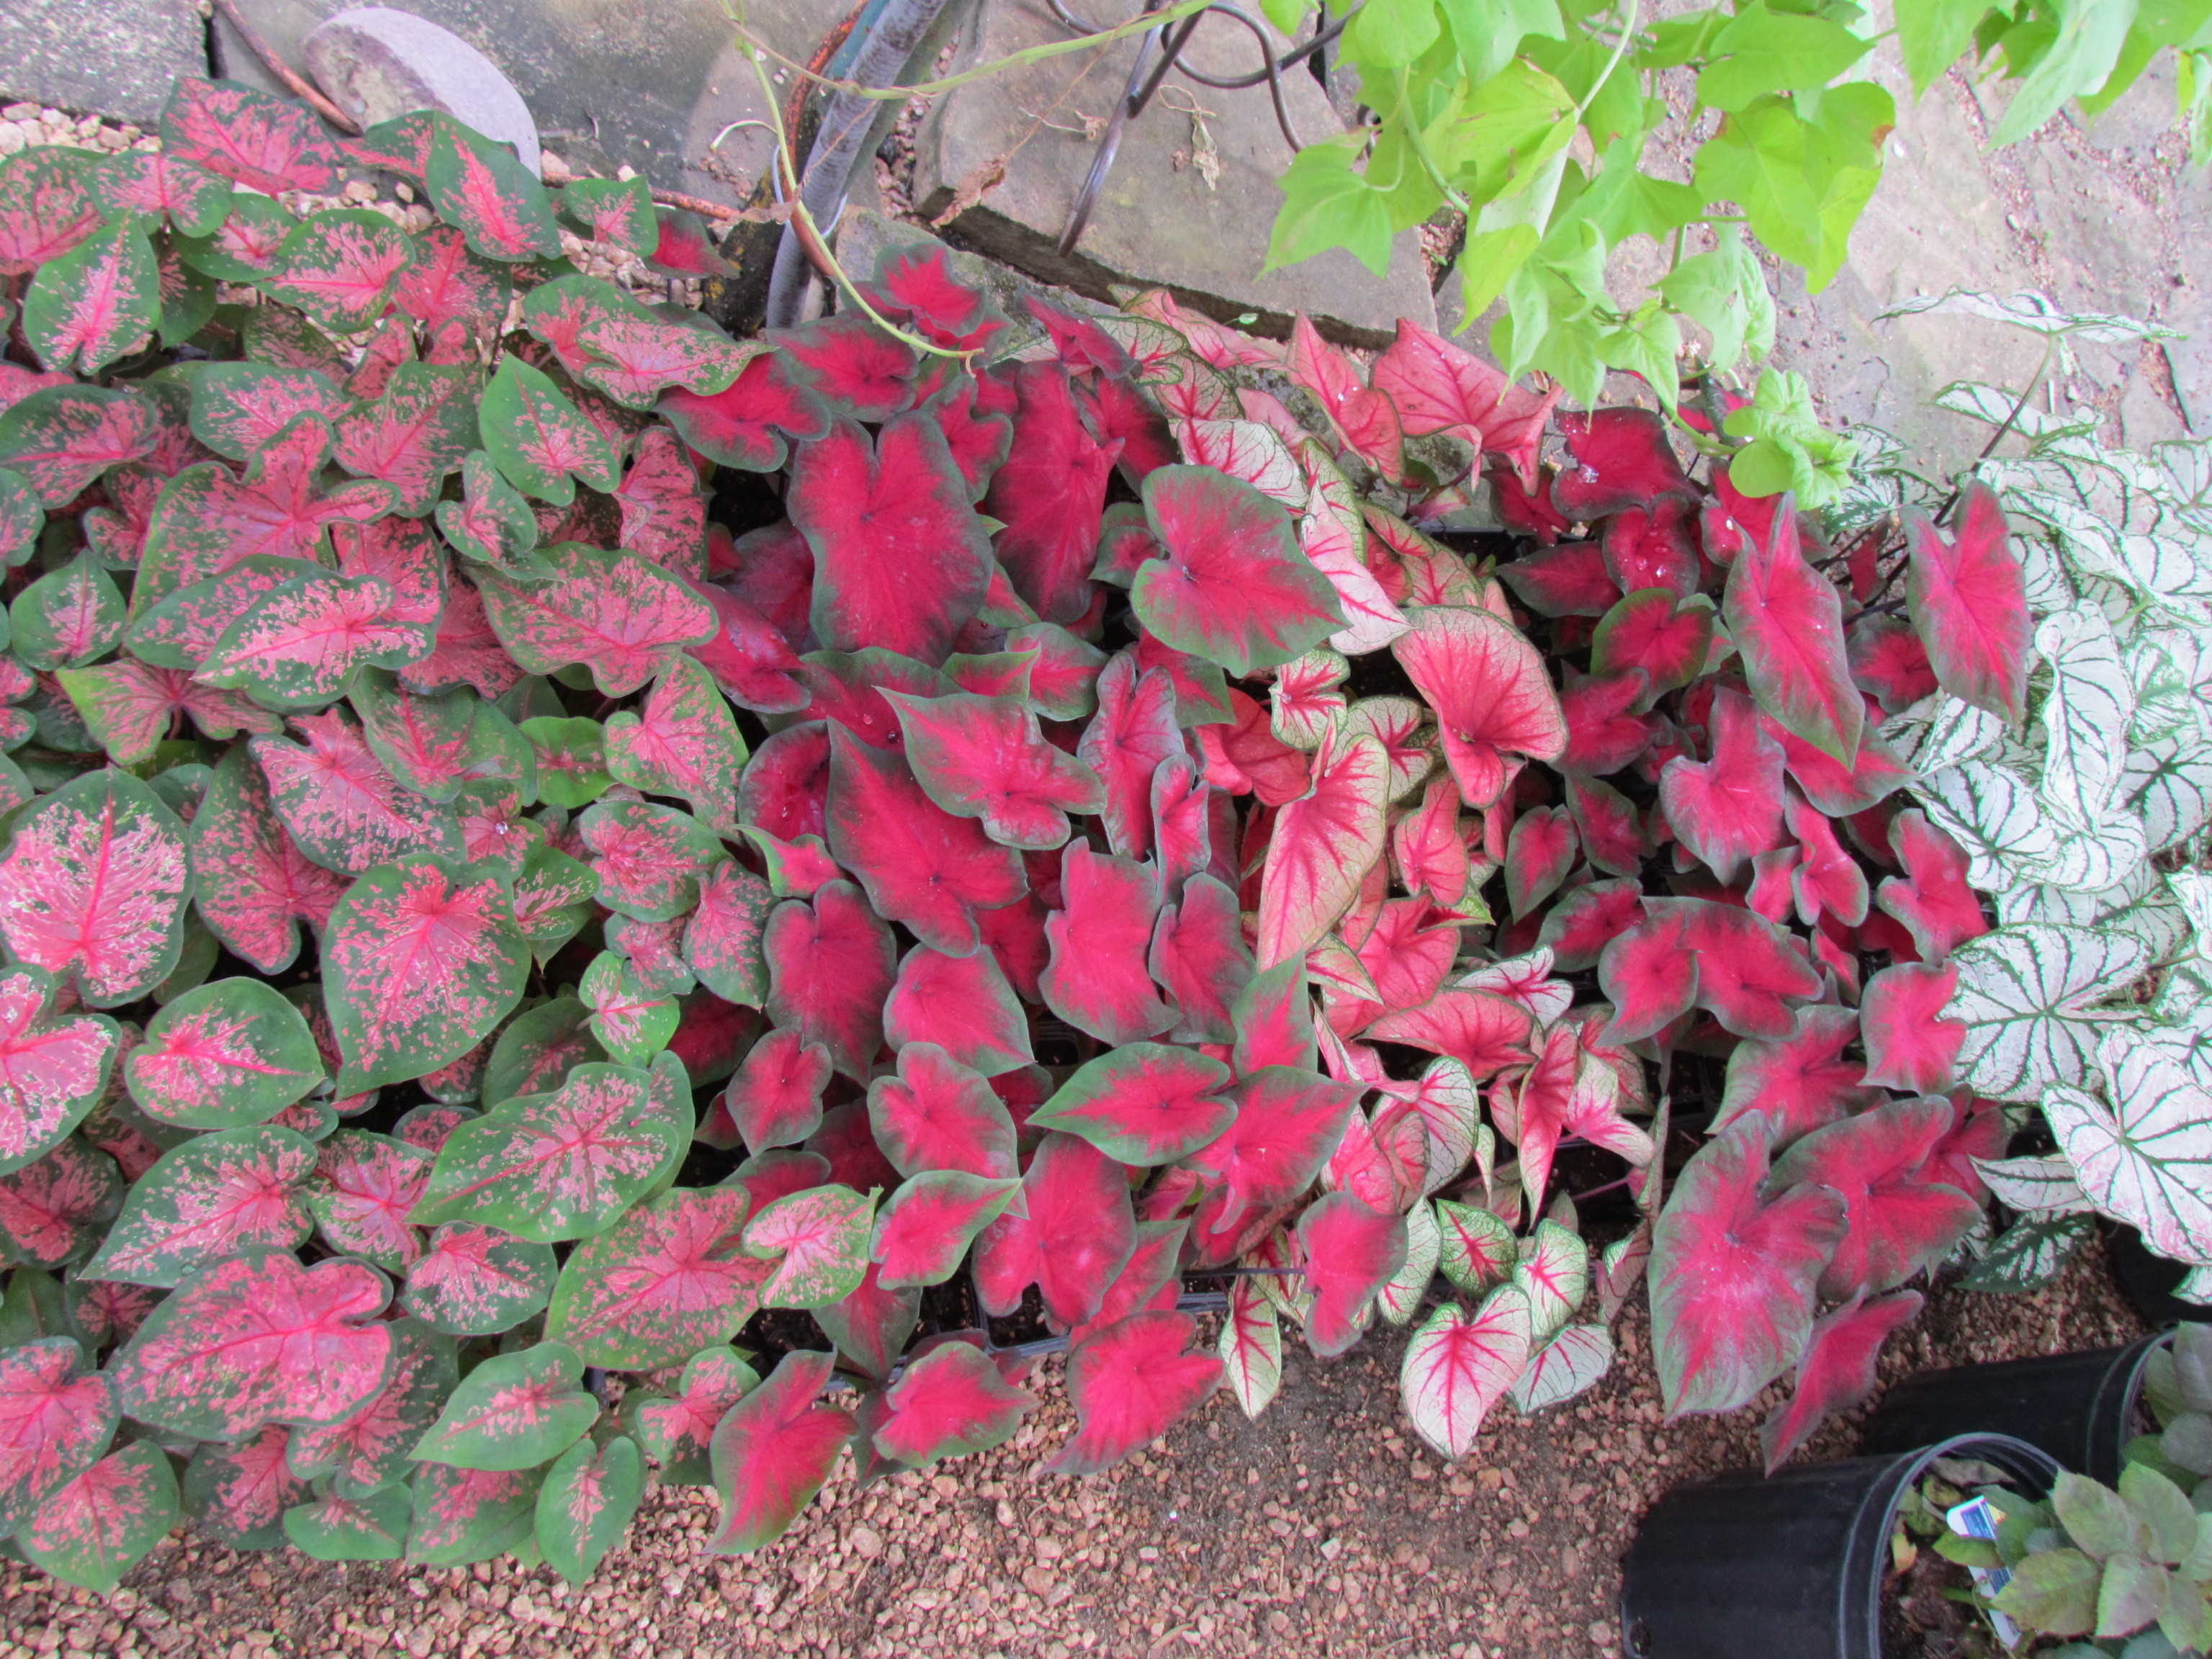 Groundcover like Caladiums and more available J&J Nursery, Spring, TX